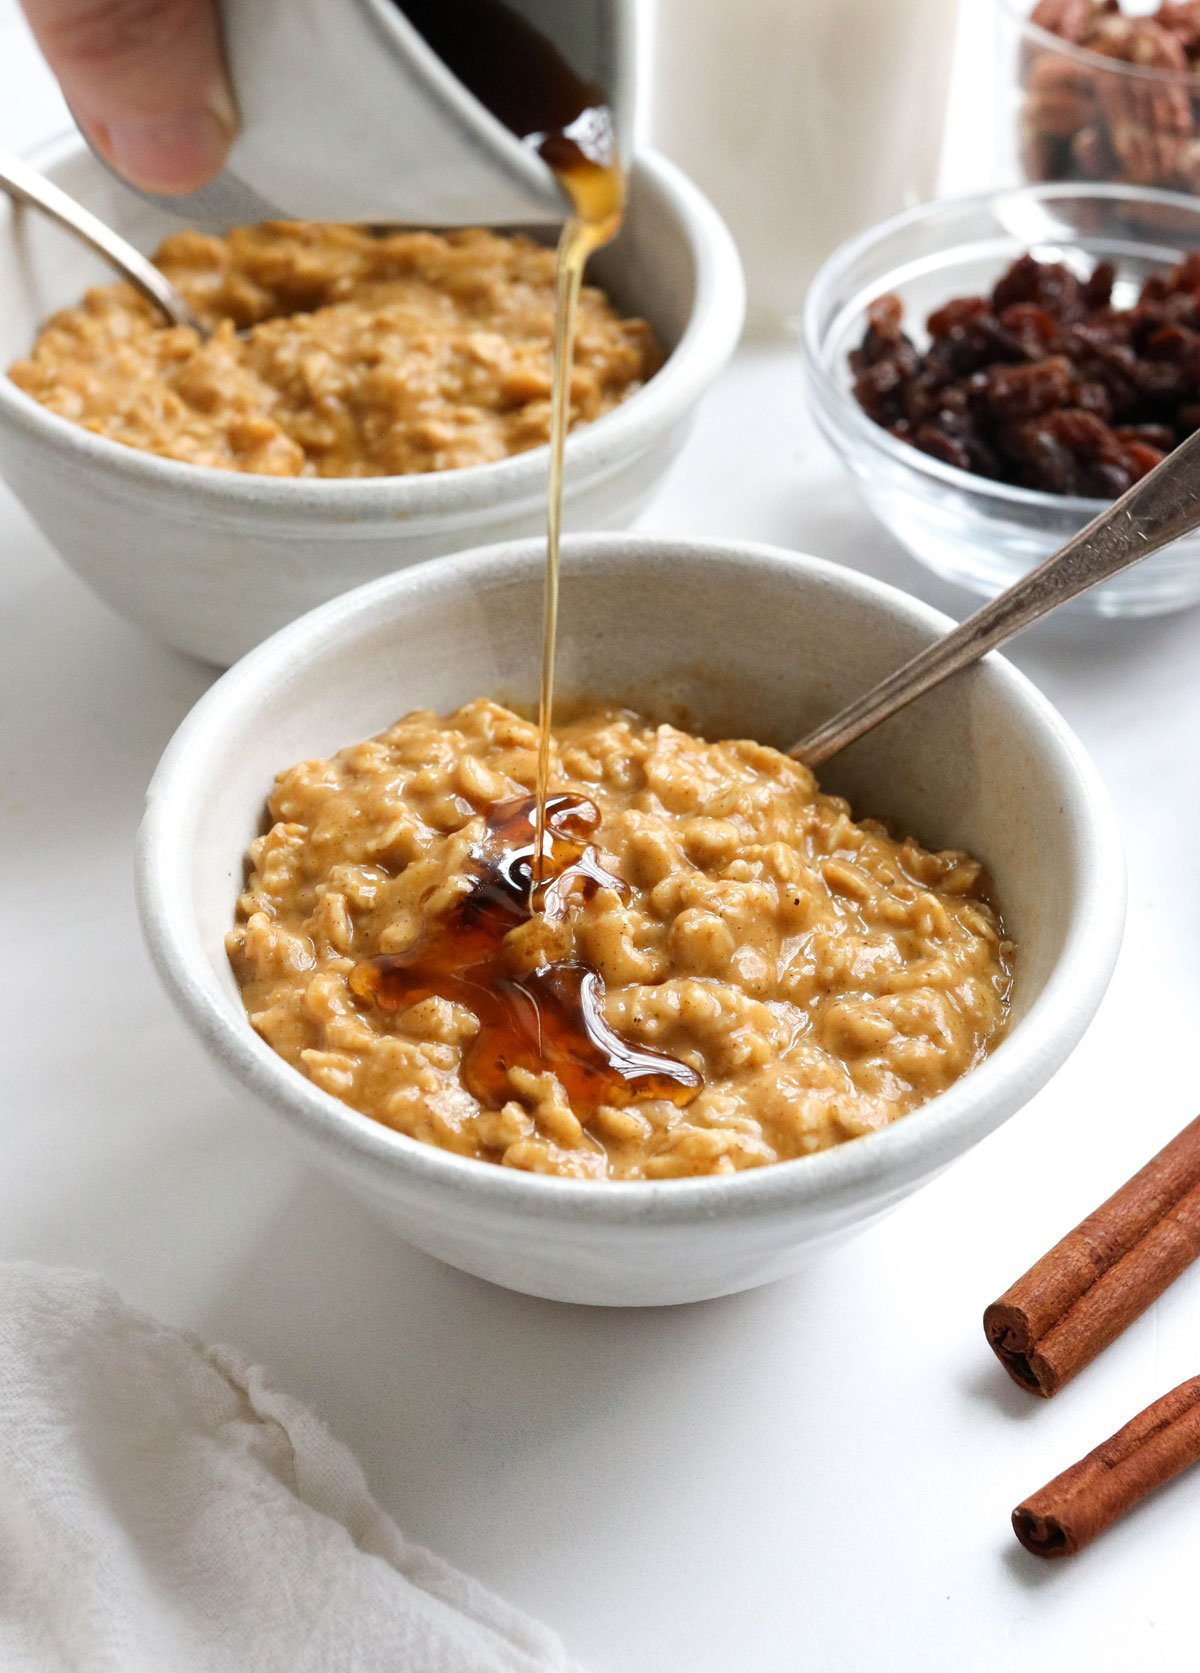 maple syrup added to oatmeal